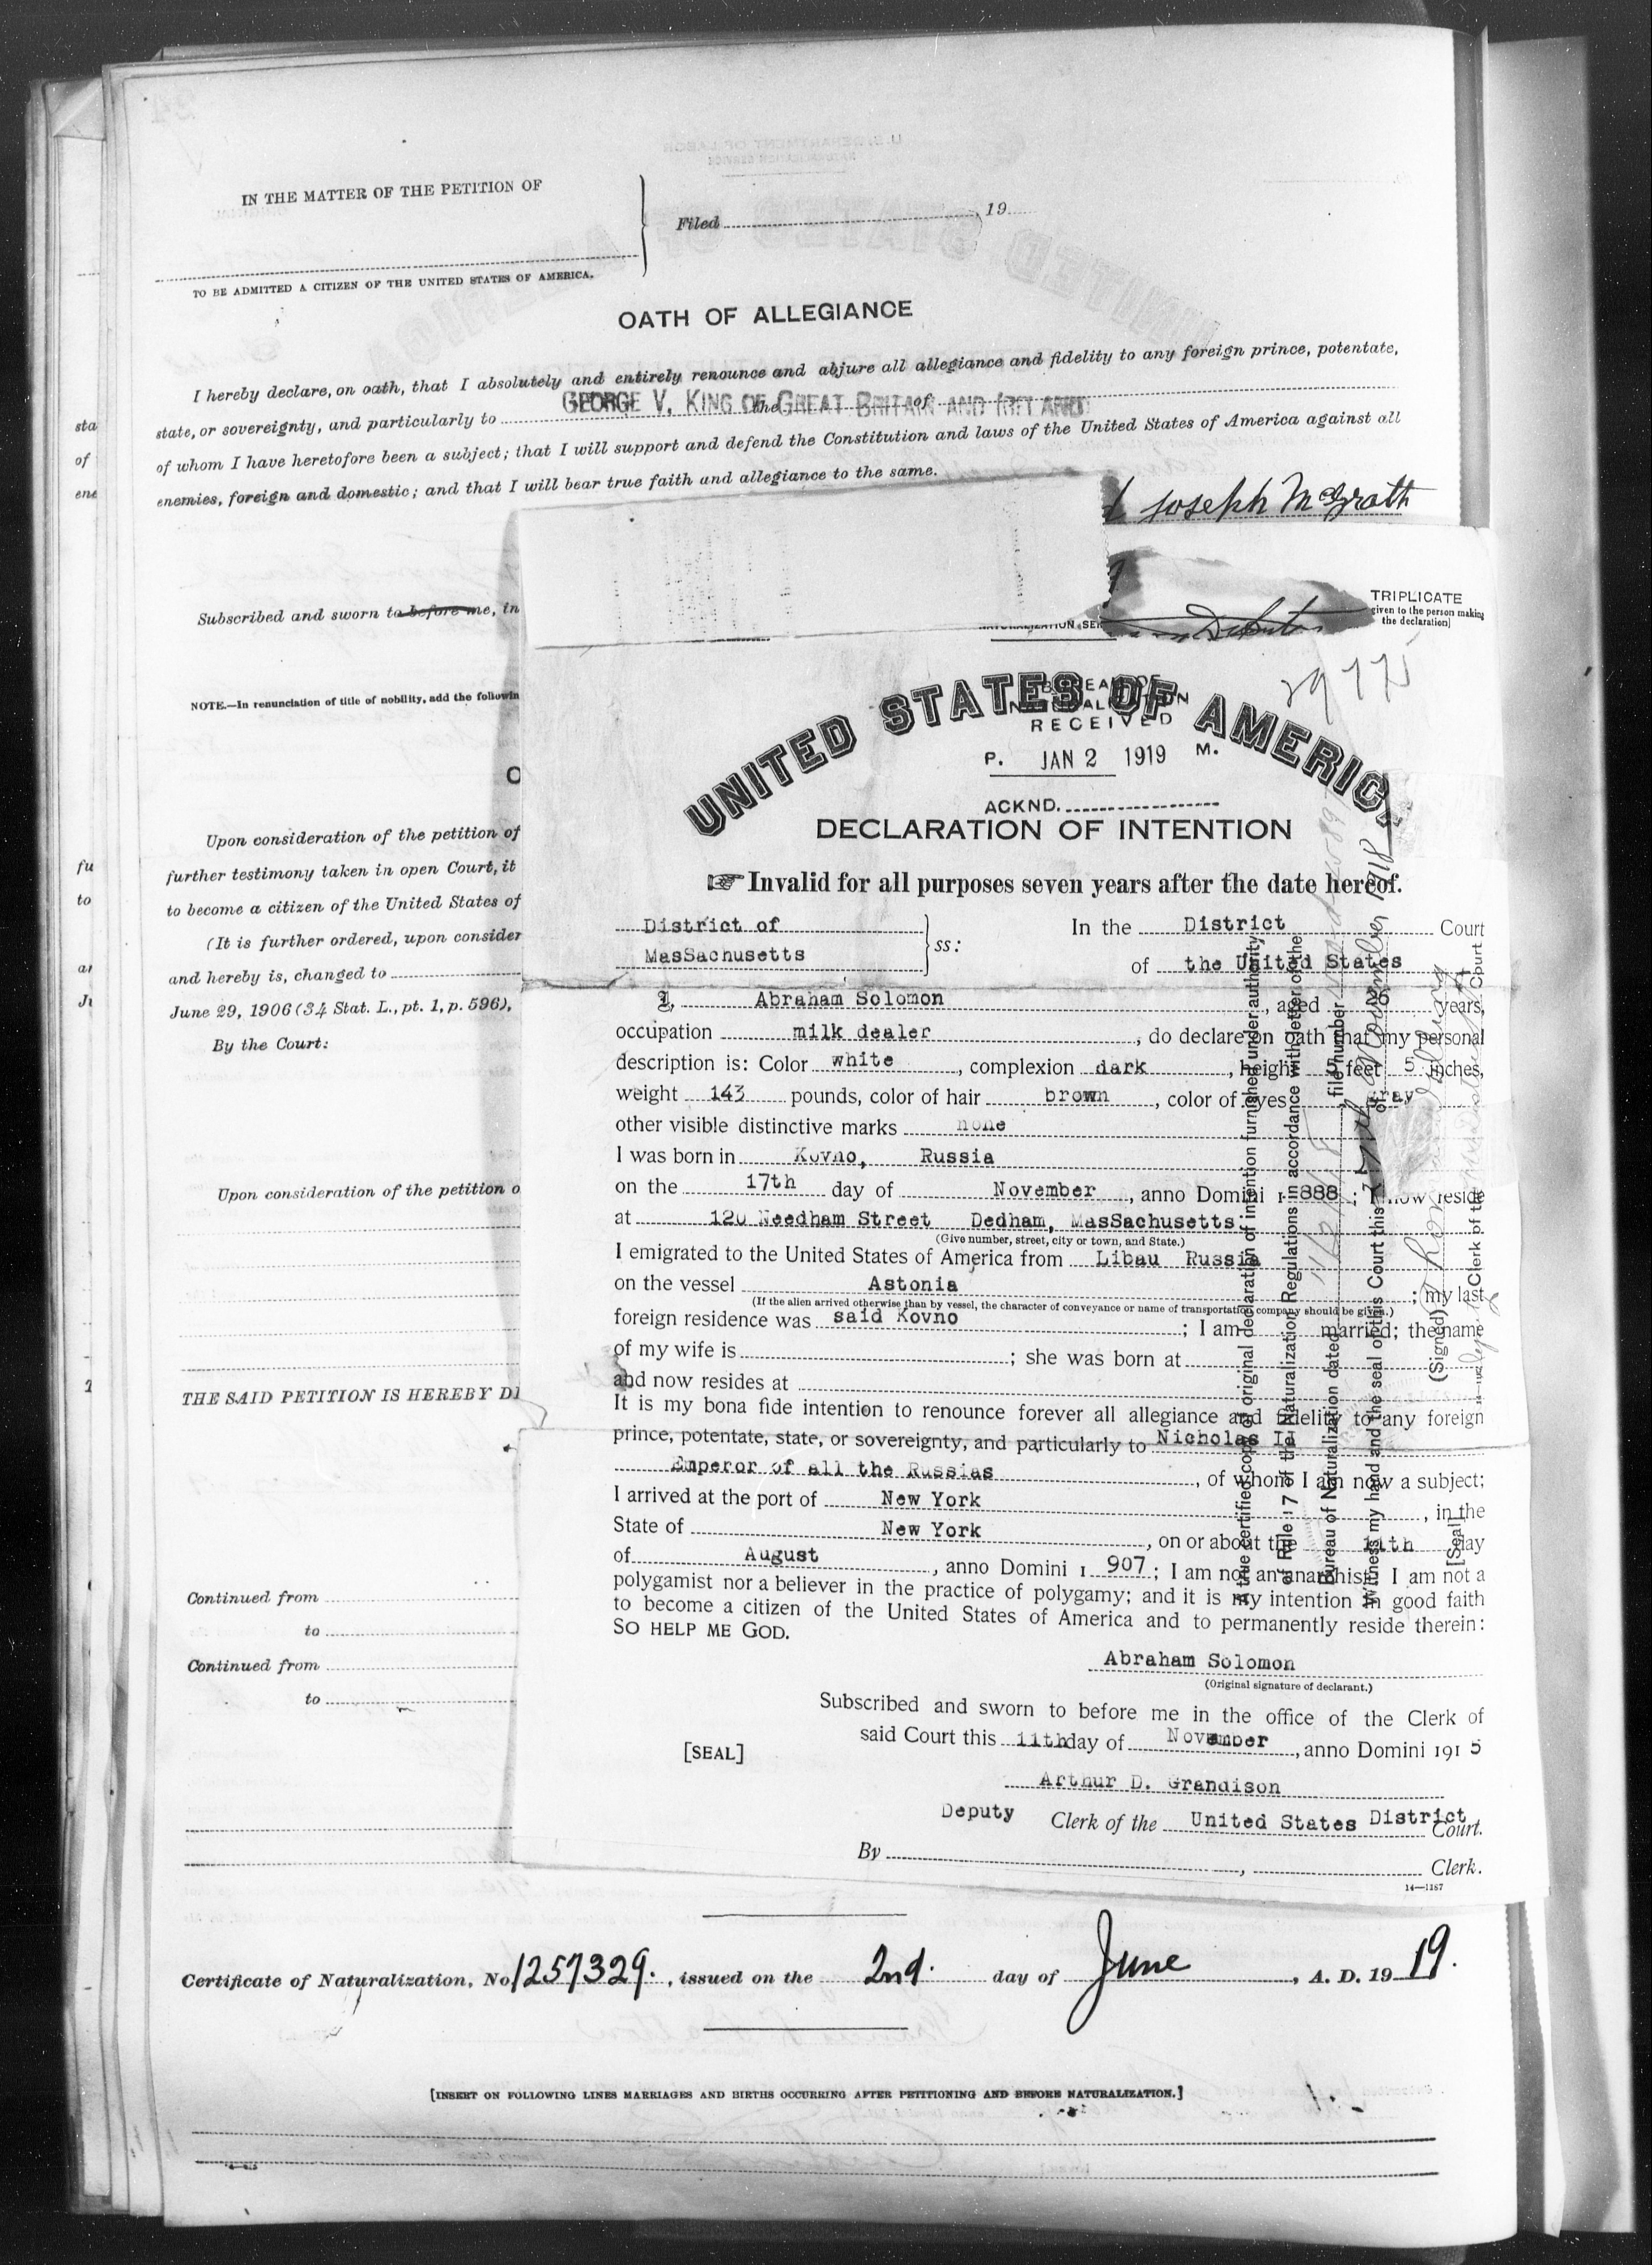 Petition for Naturalization of Abraham Solomon